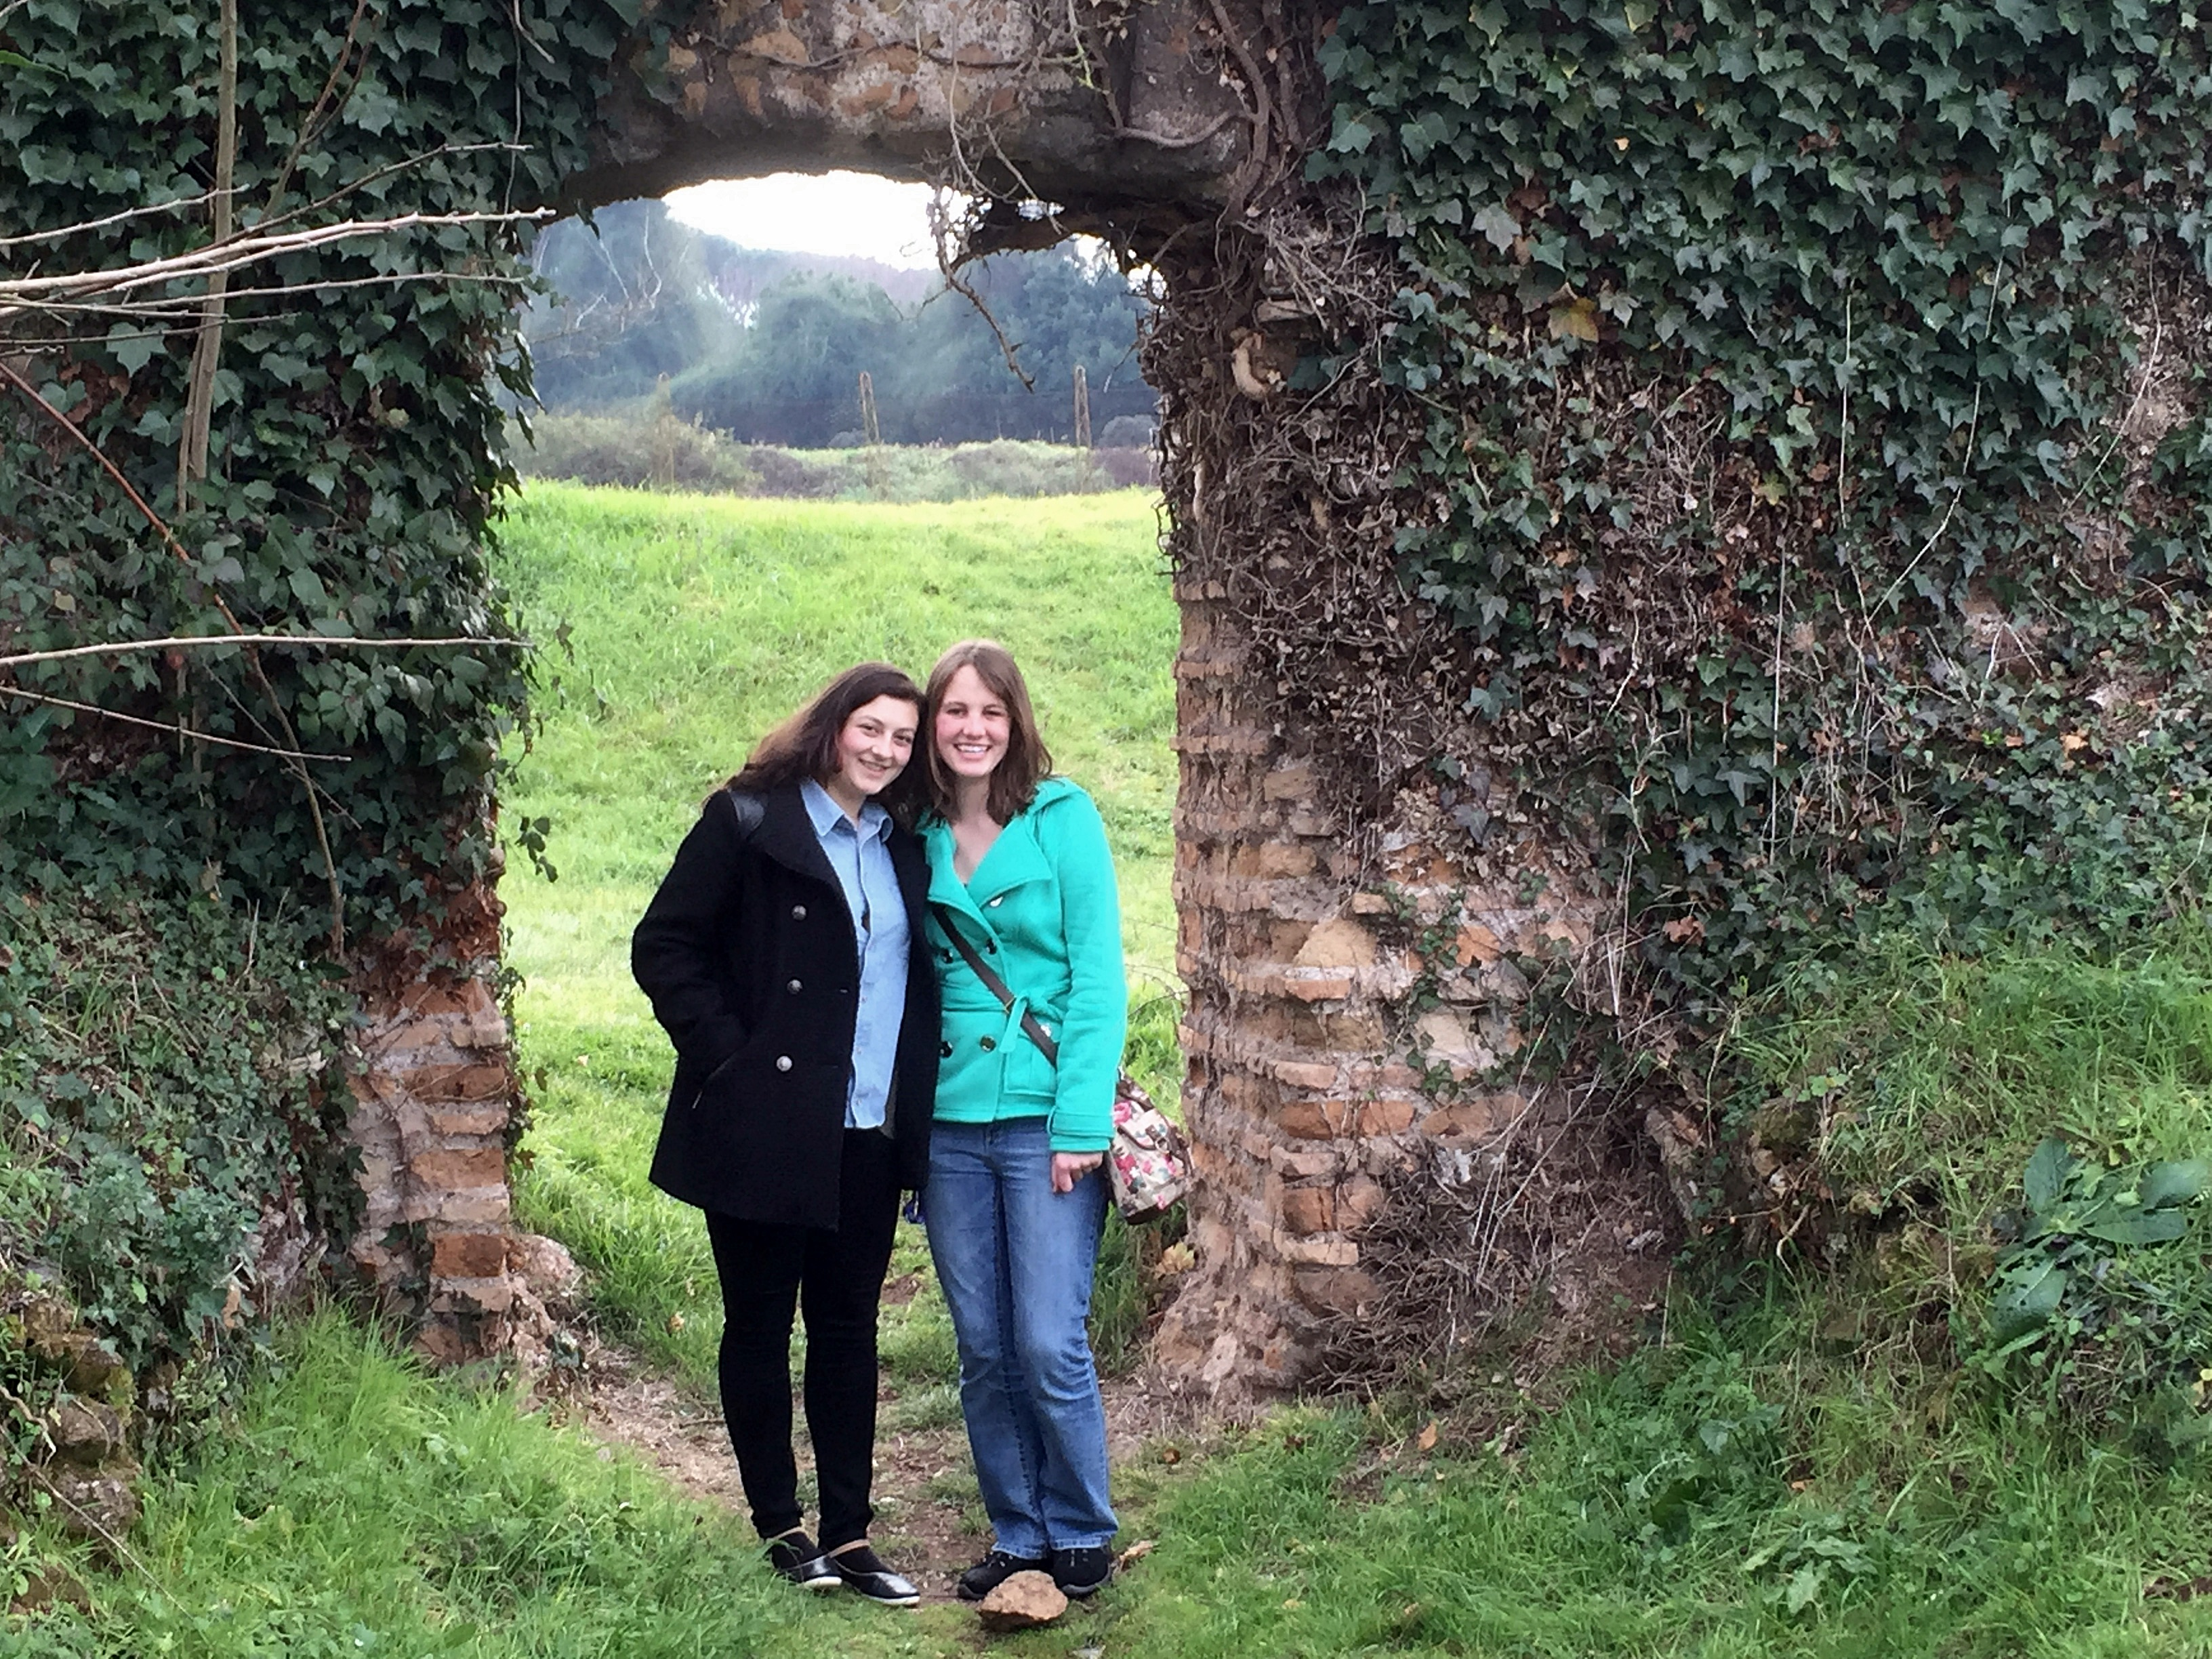 Catacombs Excursion and Evening Wine Tasting: January 23, 2016